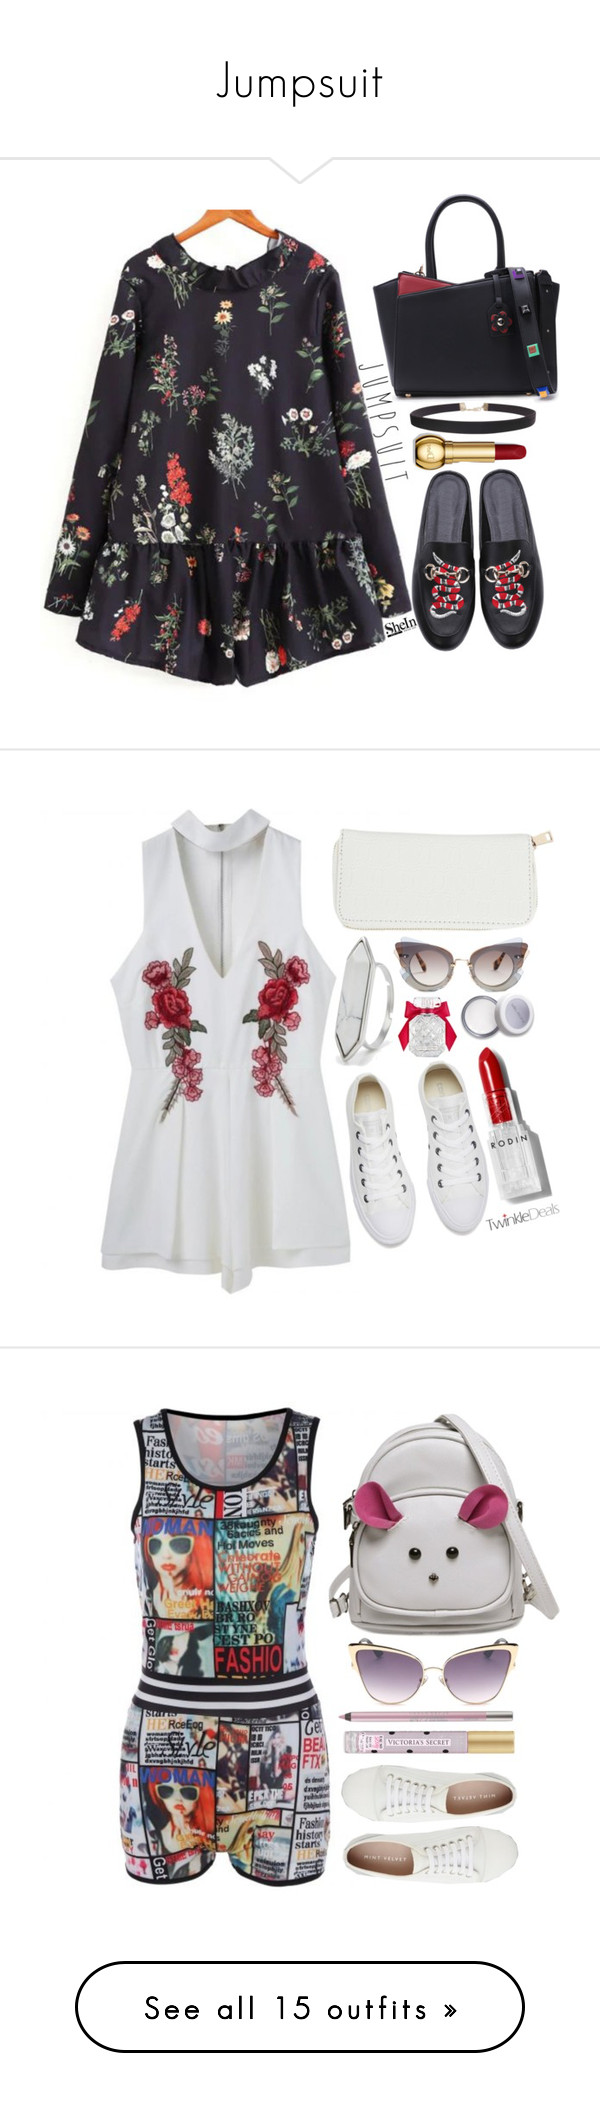 """Jumpsuit"" by simona-altobelli ❤ liked on Polyvore featuring Humble Chic, Miu Miu, Converse, Victoria's Secret, Rodin, Mint Velvet, Urban Decay, ELSE, Marc Jacobs and Lemlem"